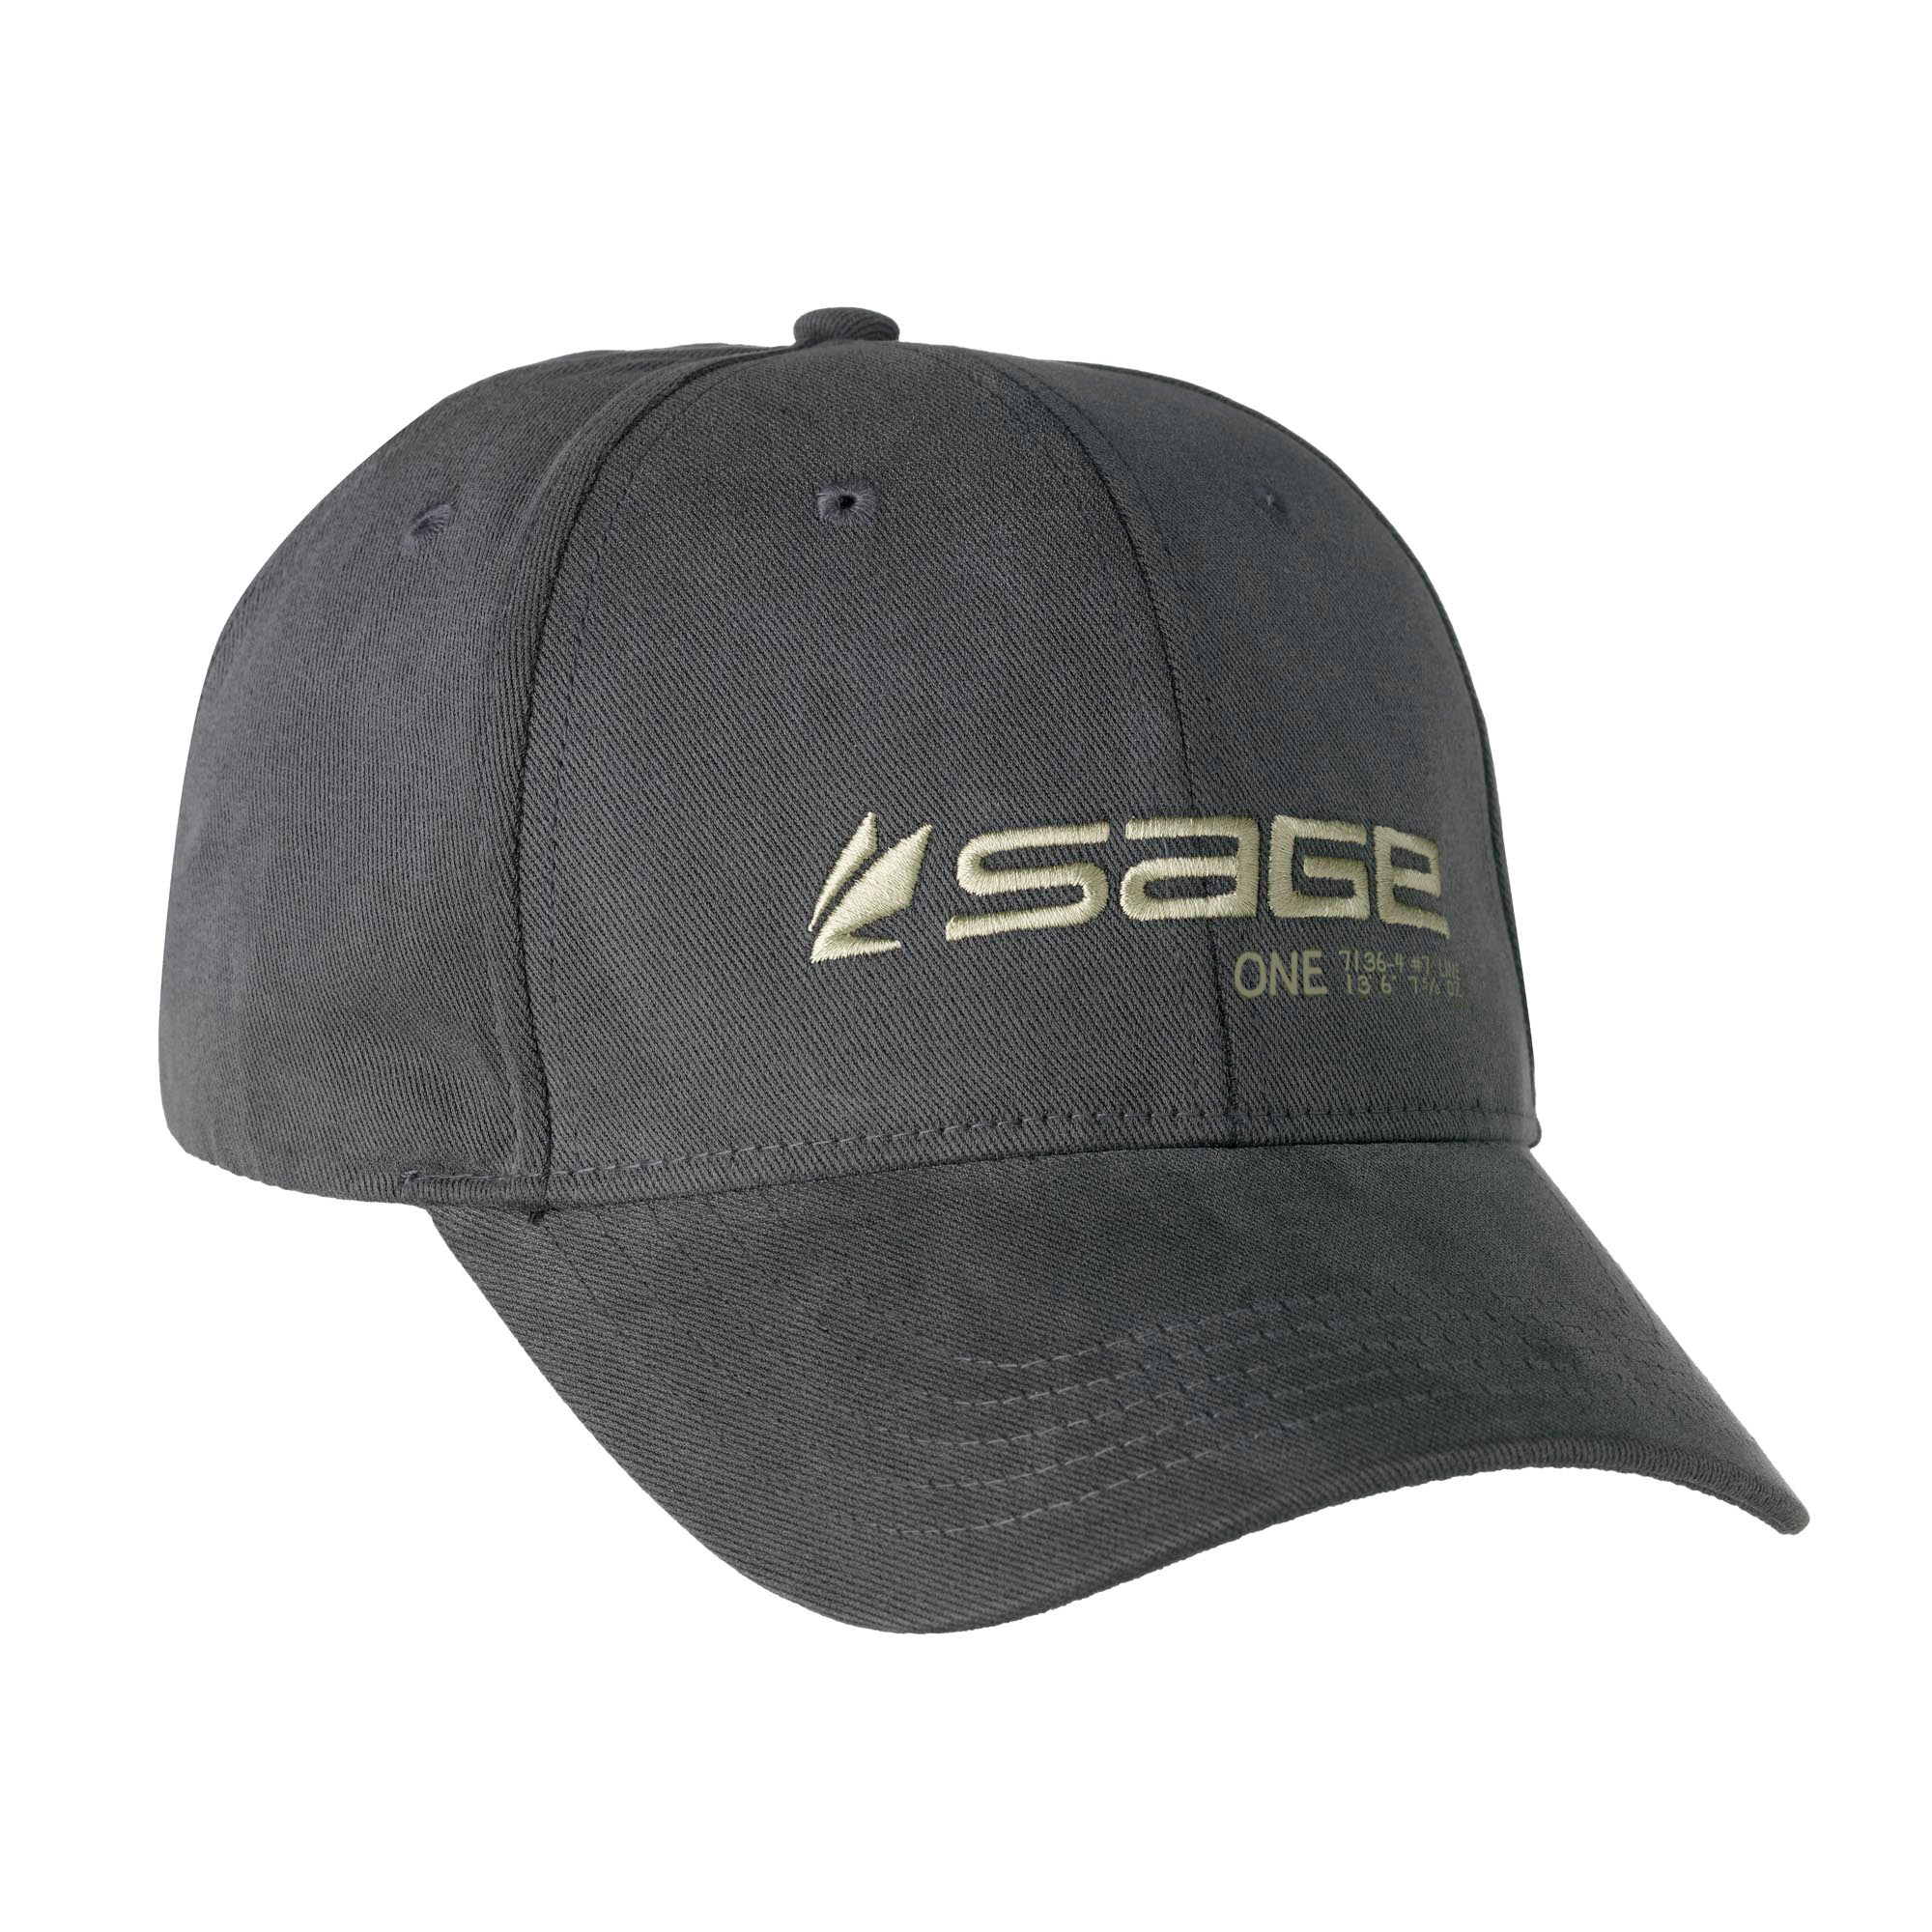 Sage one rod hat glasgow angling centre for Sage fly fishing hat